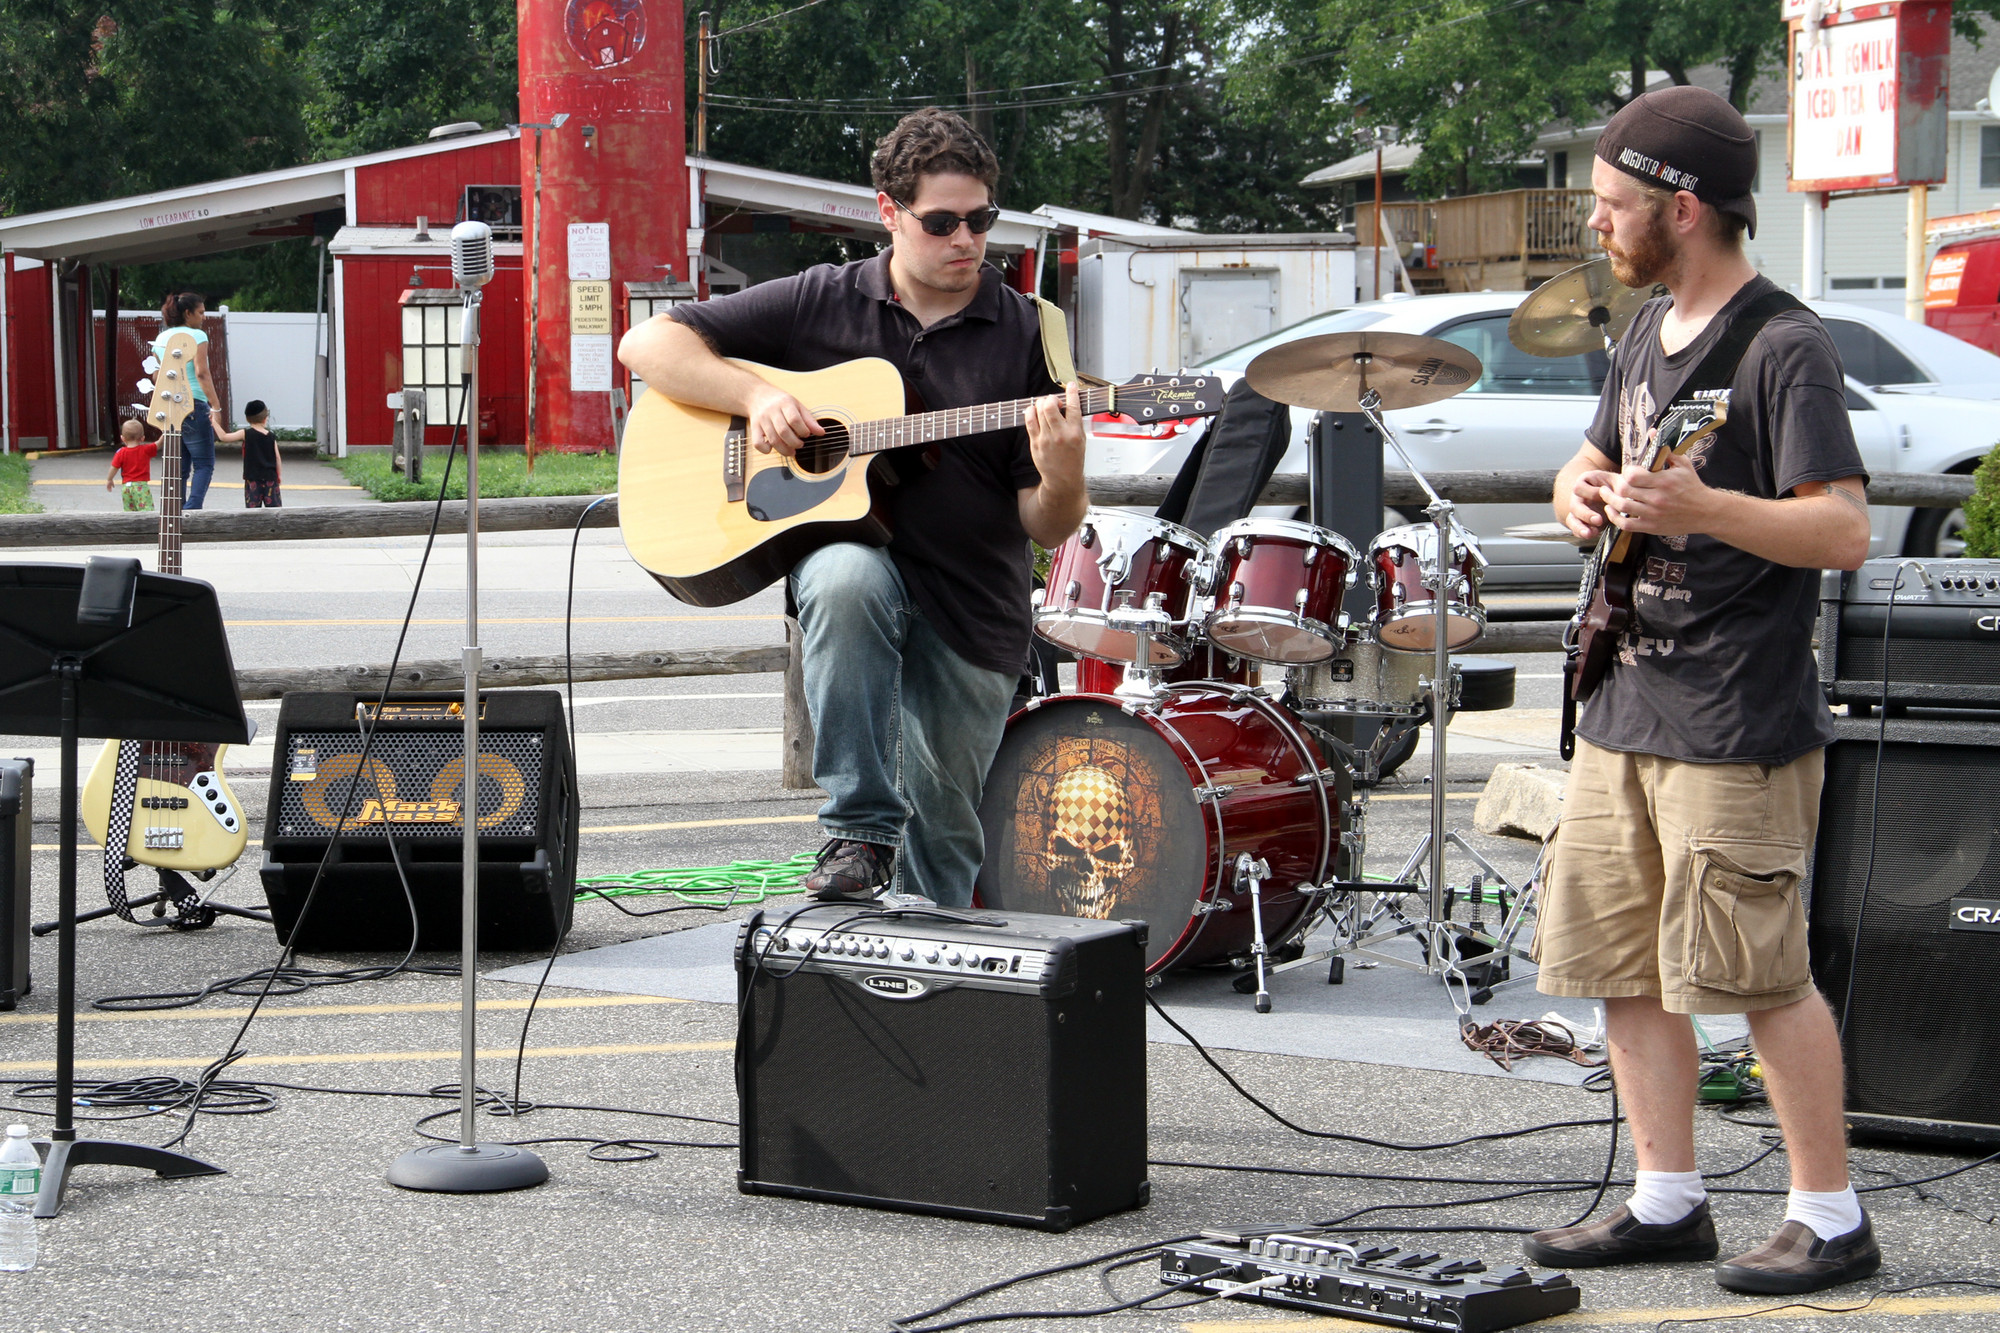 Tom Rizzuto and Ryan Closs perform for the crowd outside Riesterer's Bakery.